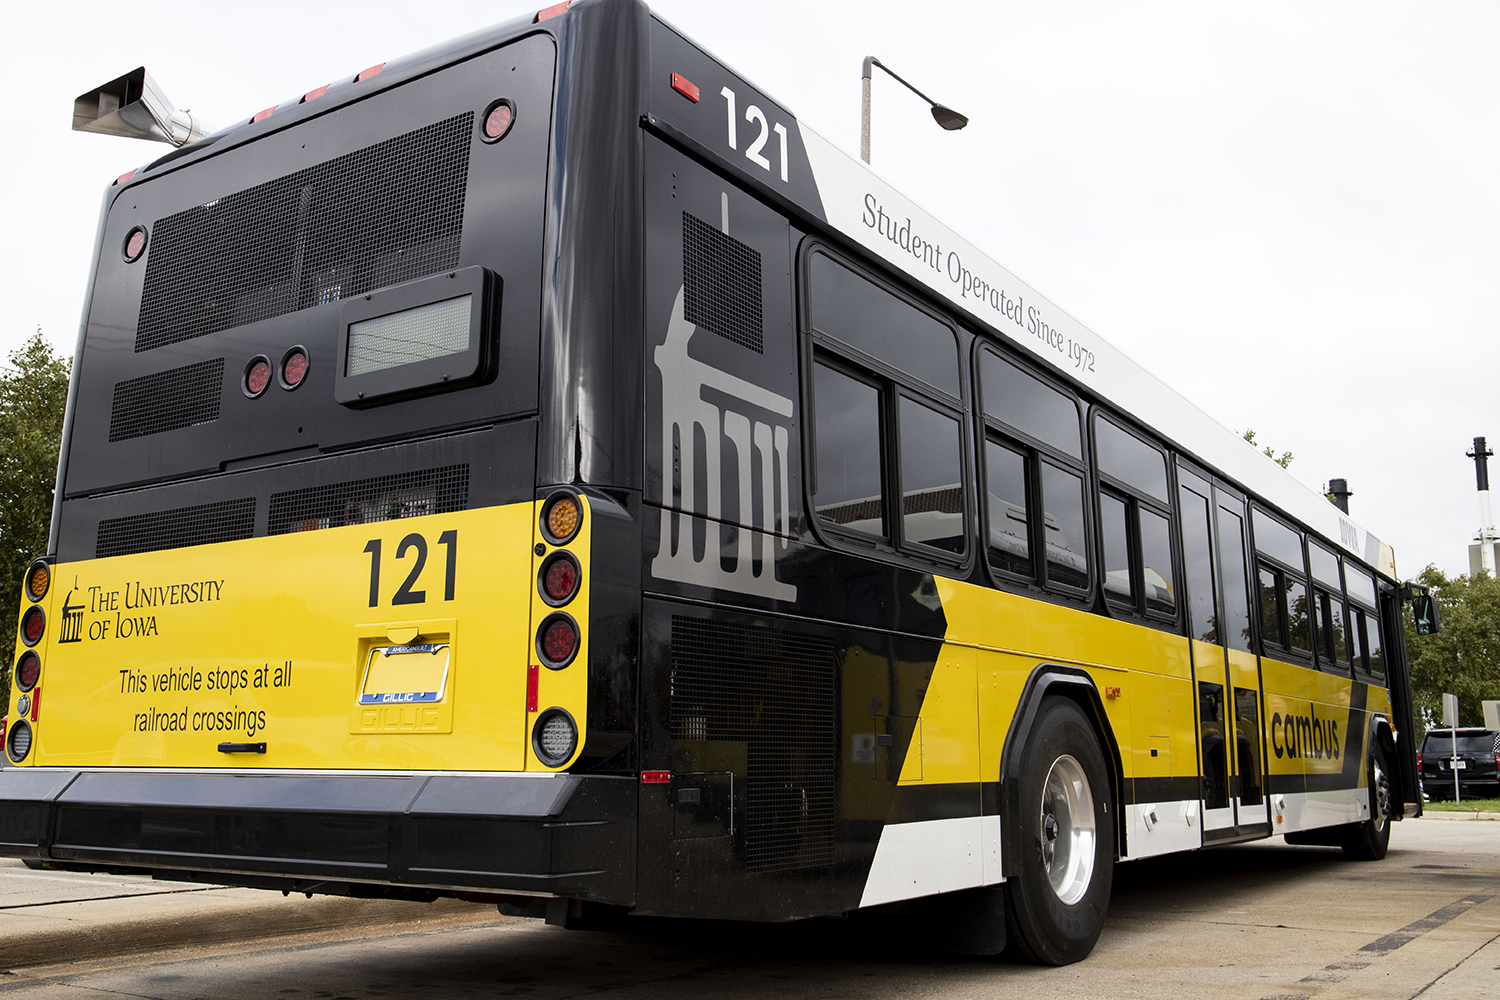 The new Cambus is seen at the Cambus Maintenance Facility on Friday, October 11, 2019. (Jenna Galligan/The Daily Iowan)